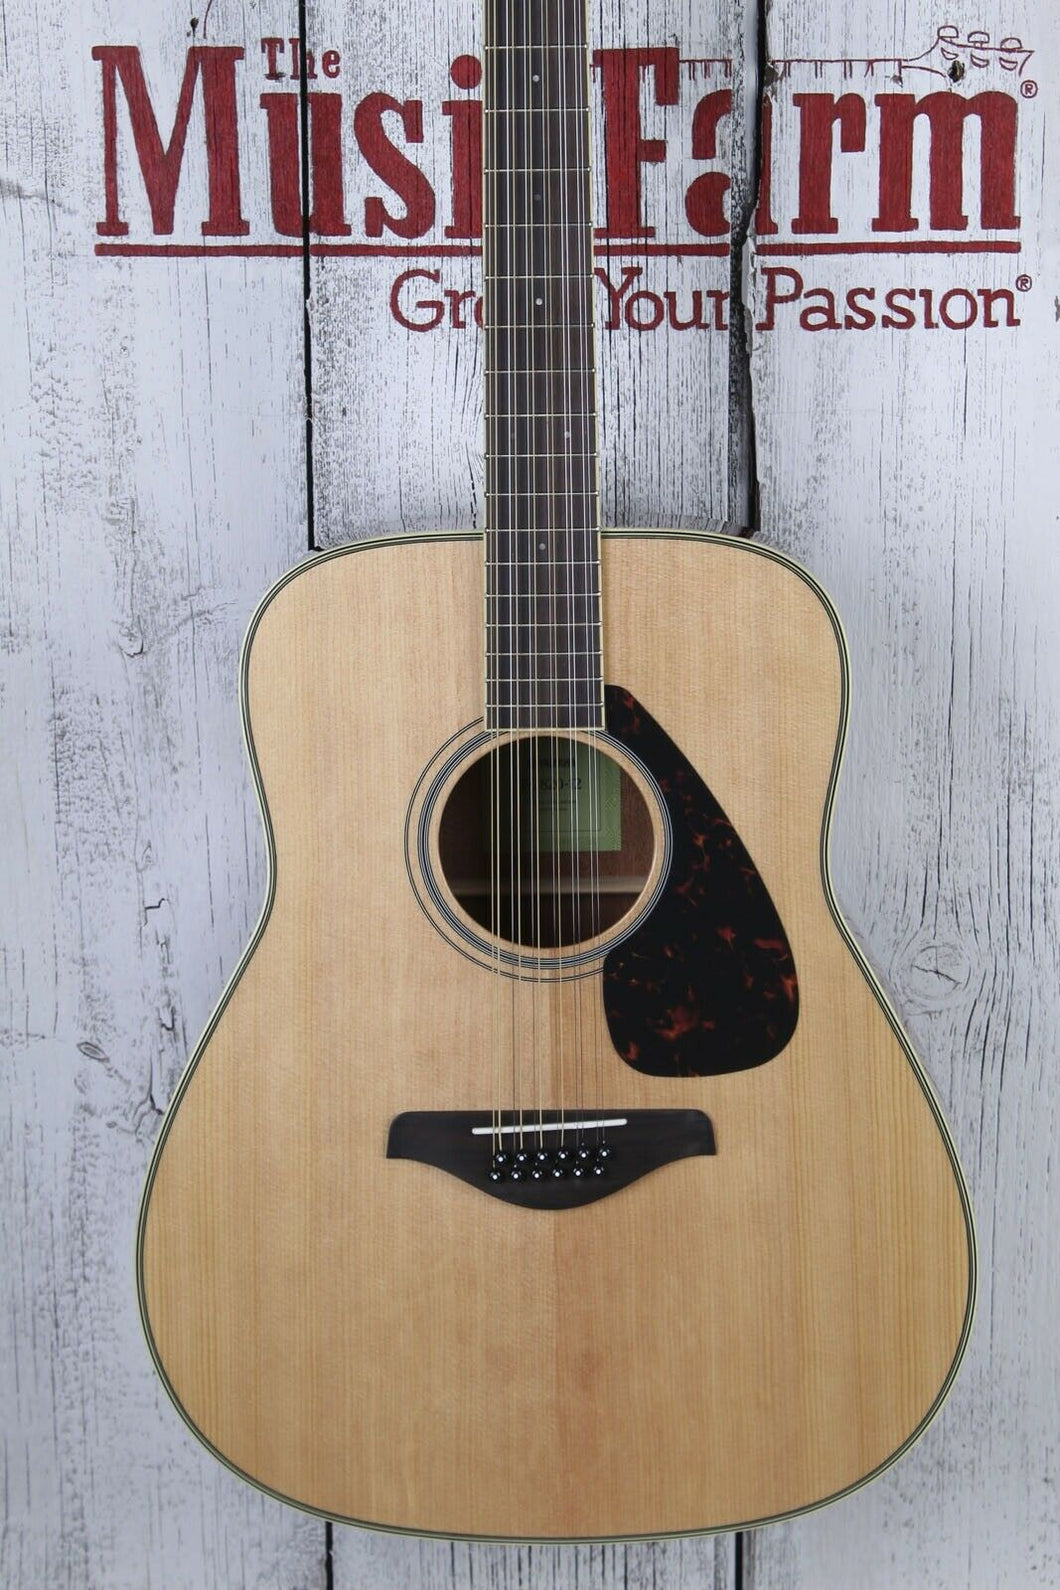 Yamaha FG820-12 Dreadnought 12 String Acoustic Guitar Solid Spruce Top Natural